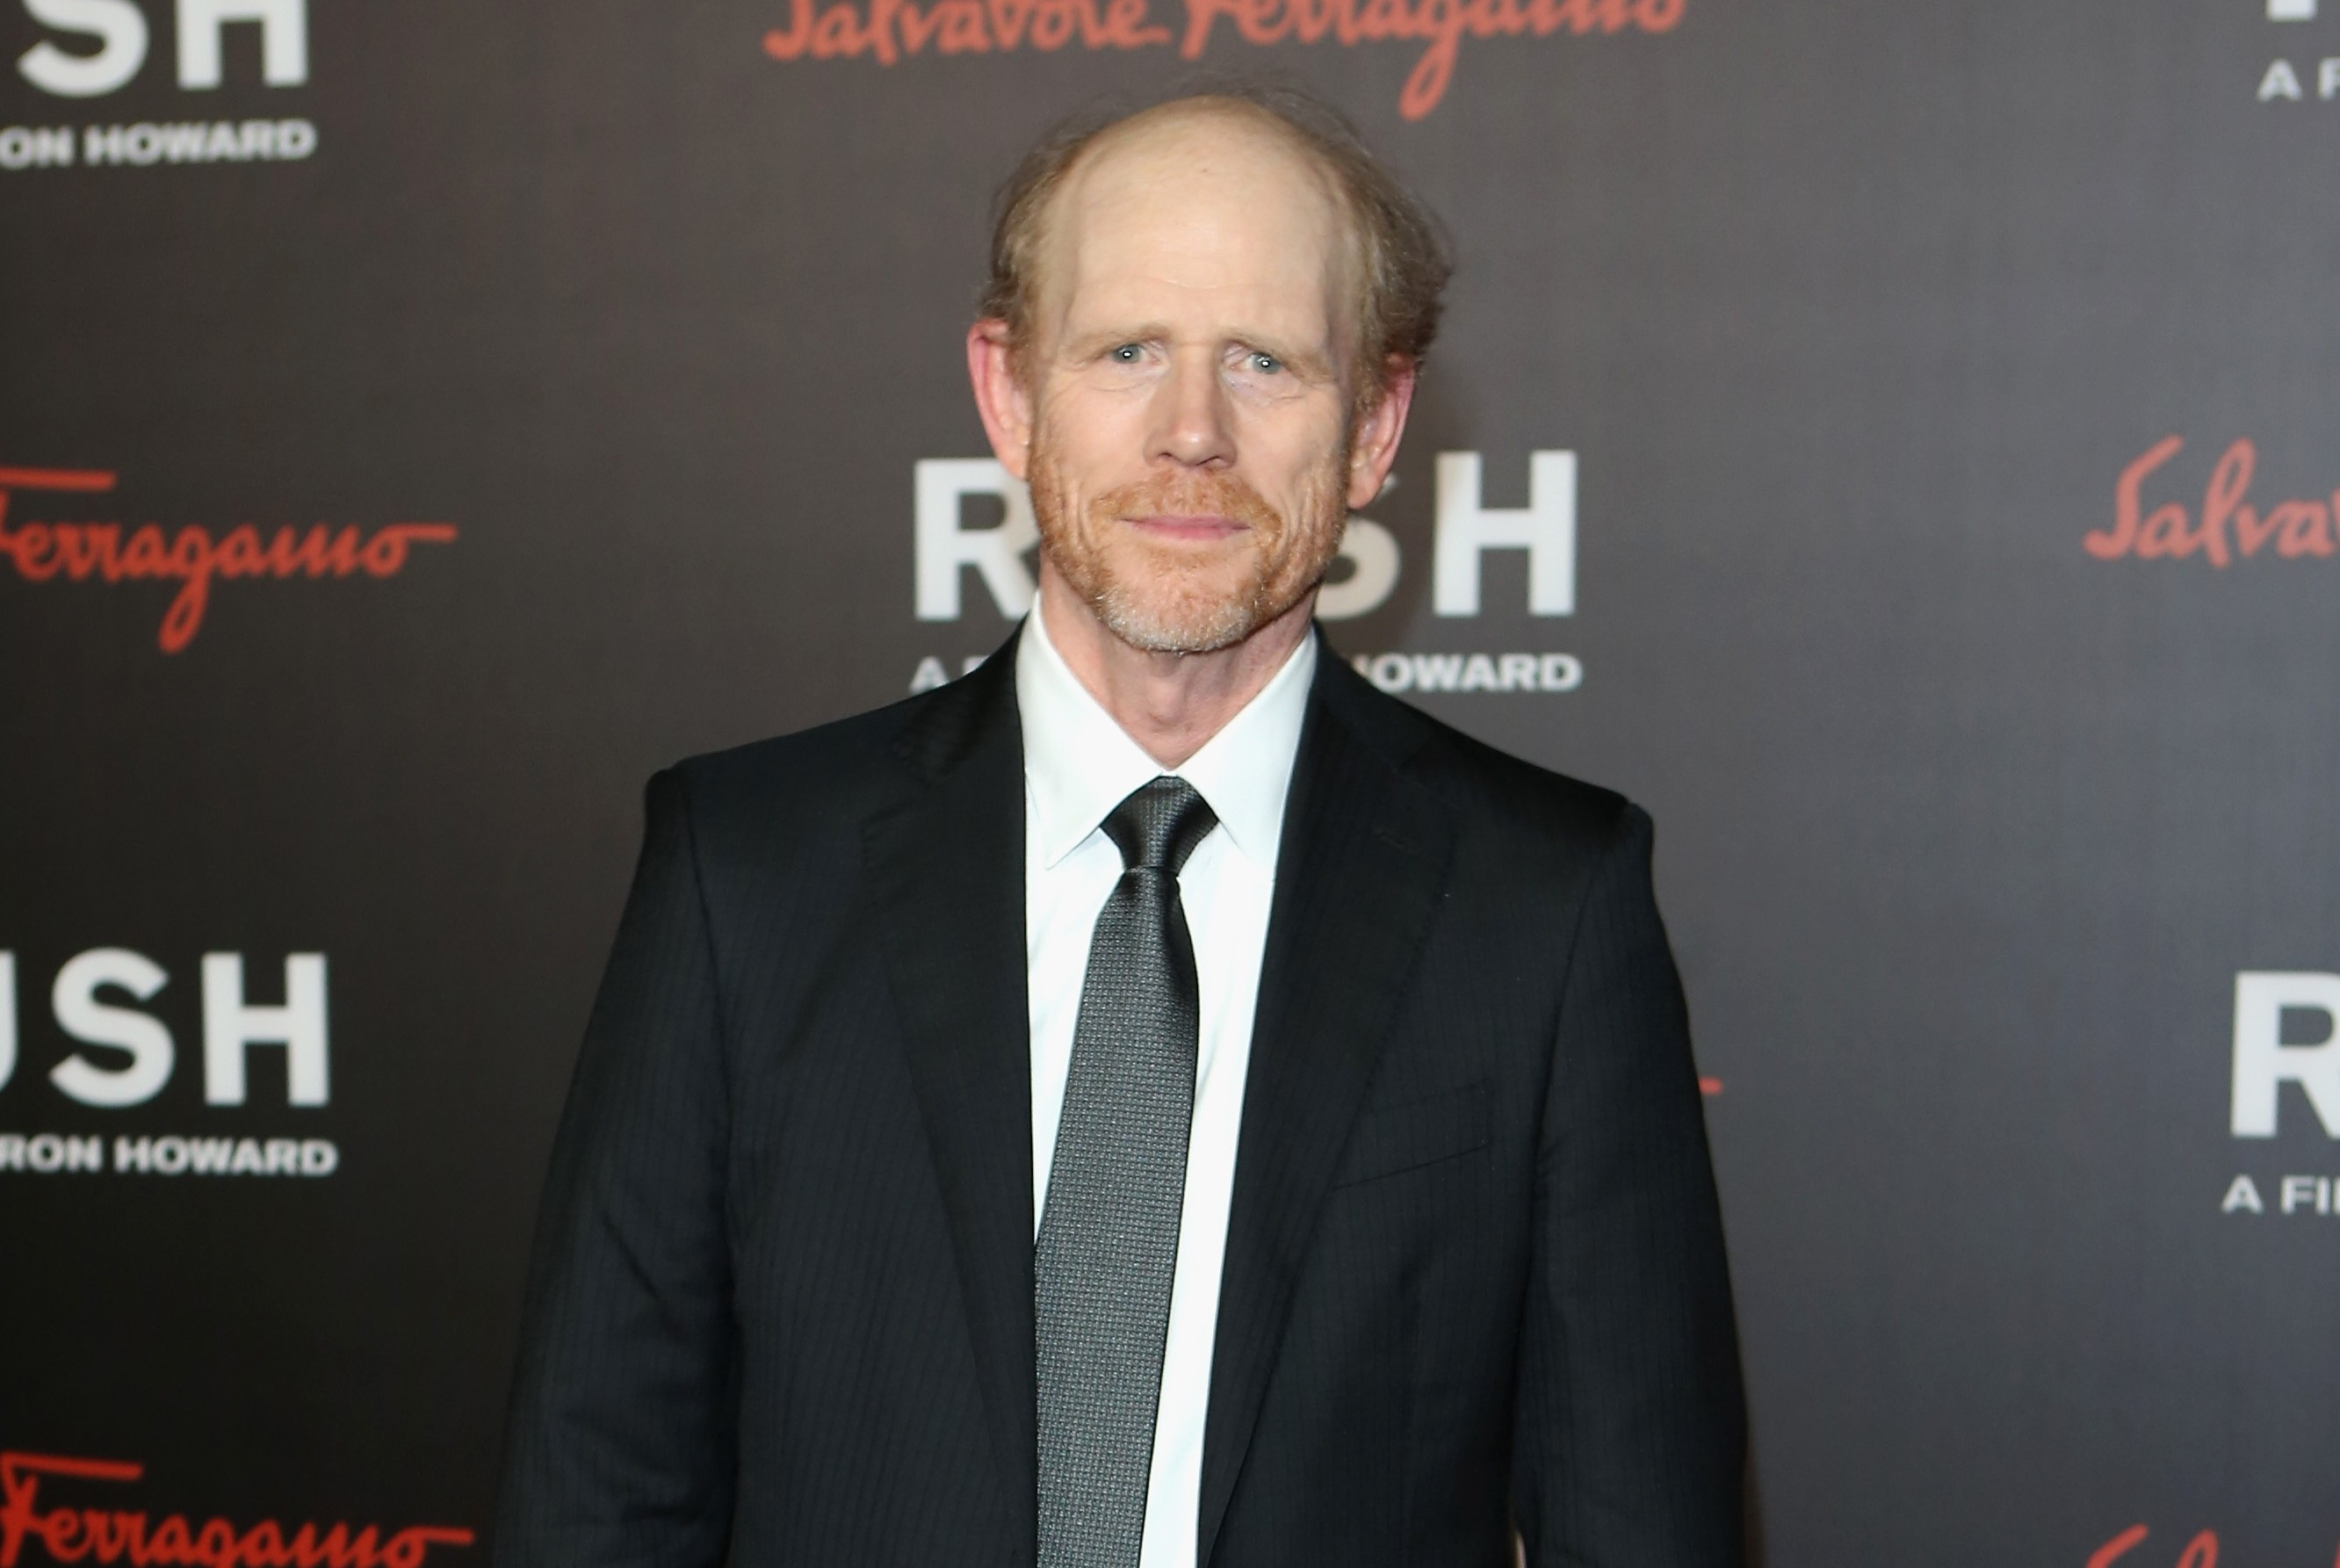 Warner Bros eyes Rush director Ron Howard for live-action The Jungle Book film